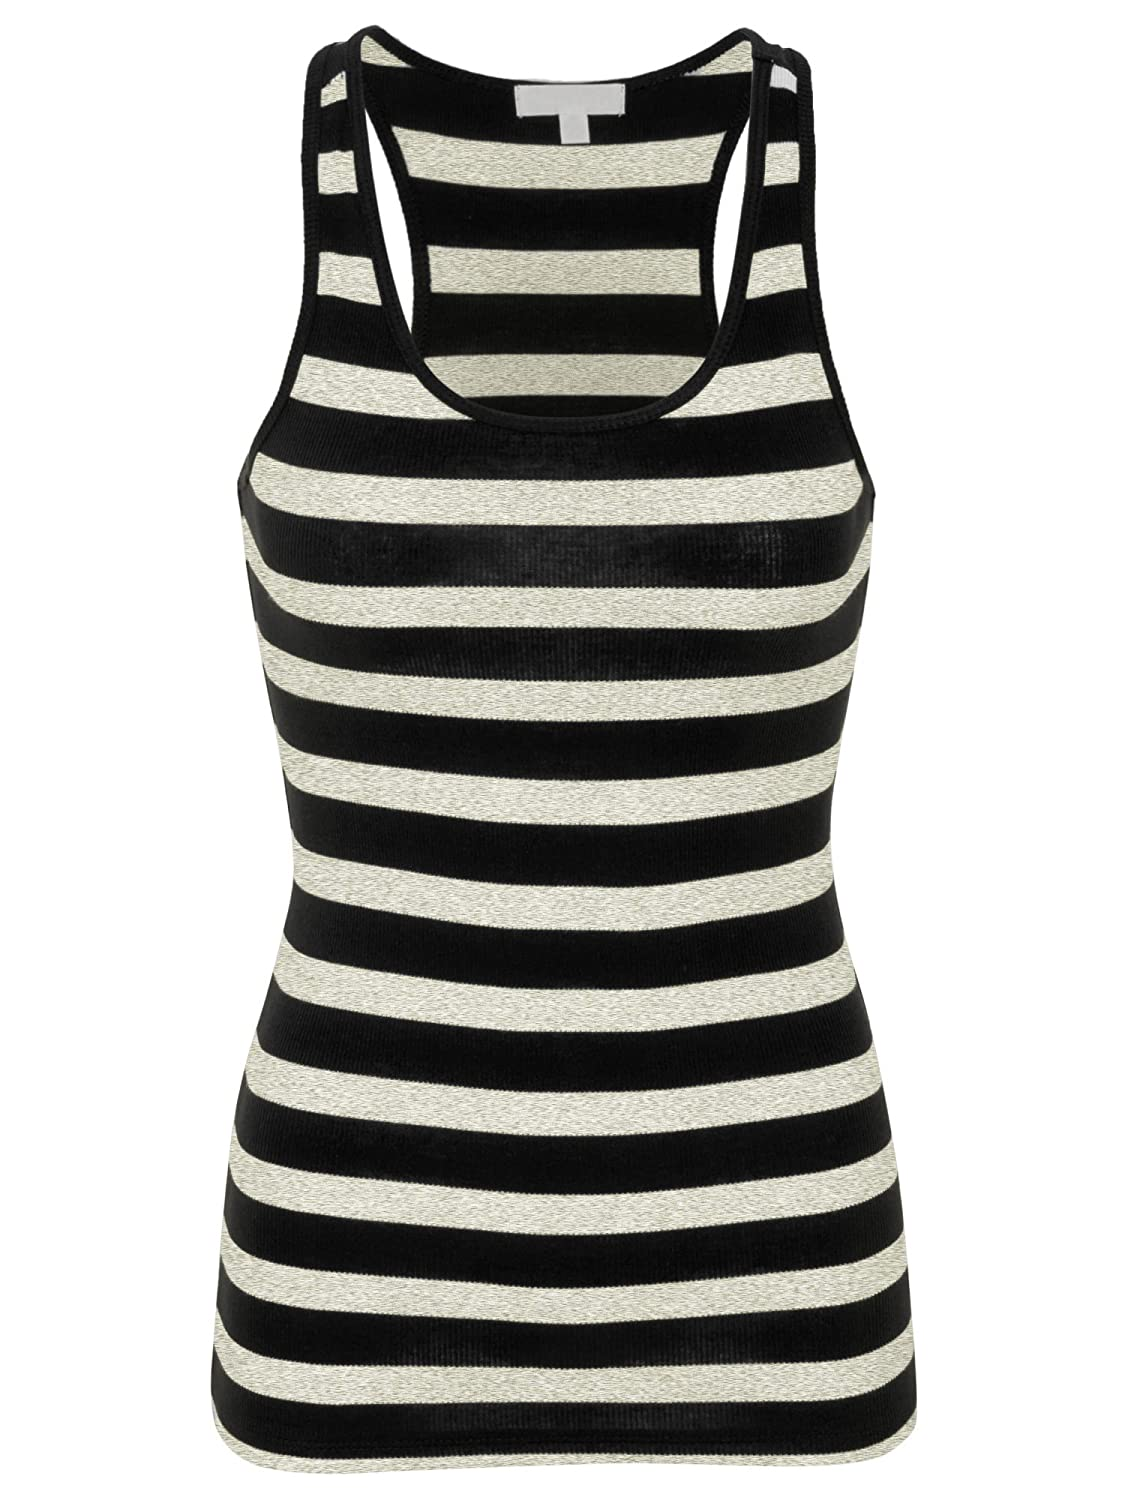 52fc729bdf9cb9 Racerback Striped Rib Tank Top Basic Summer Tank Top made with Cotton  Spandex Free Standard Shipping for Limited Time!